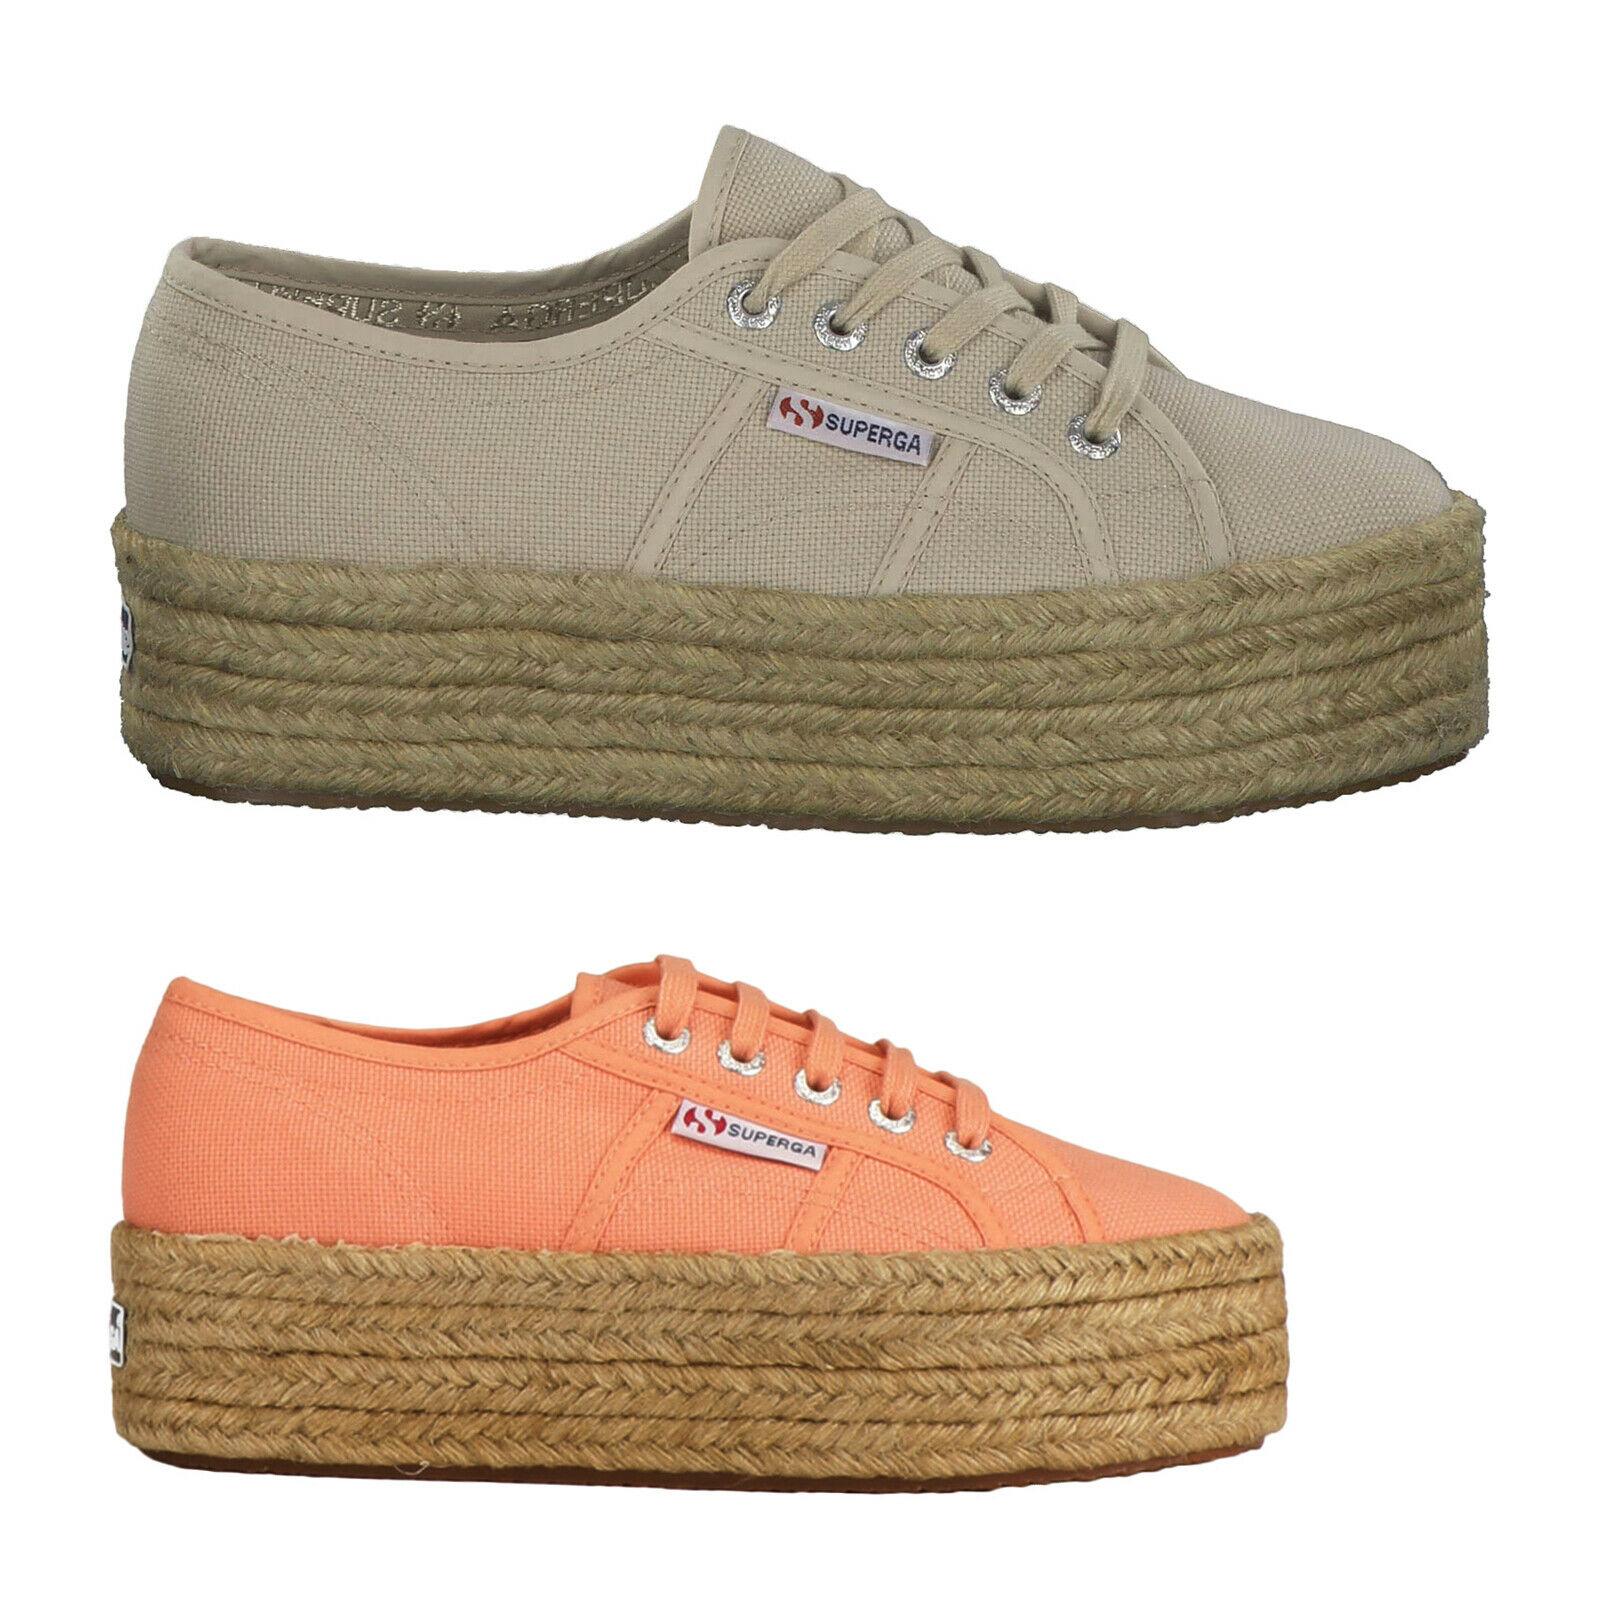 Superga 2790 cotropew Canvas Low-Top Lace-Up Platform femmes Entraîneur